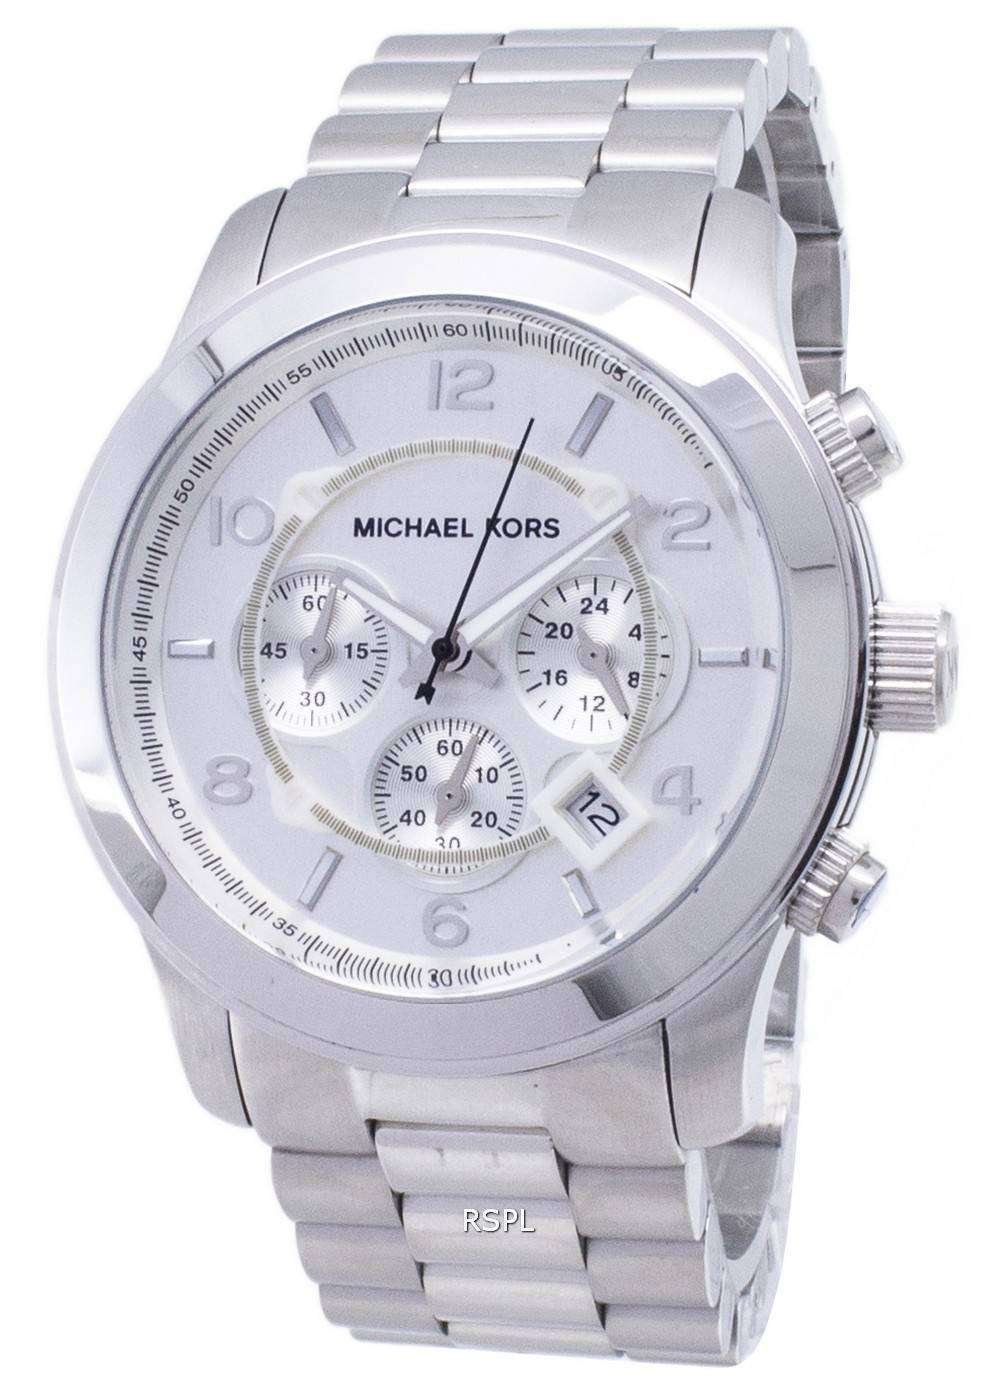 9253bd5be86a Michael Kors Silver Runway MK8086 Mens Watch - CityWatches IN